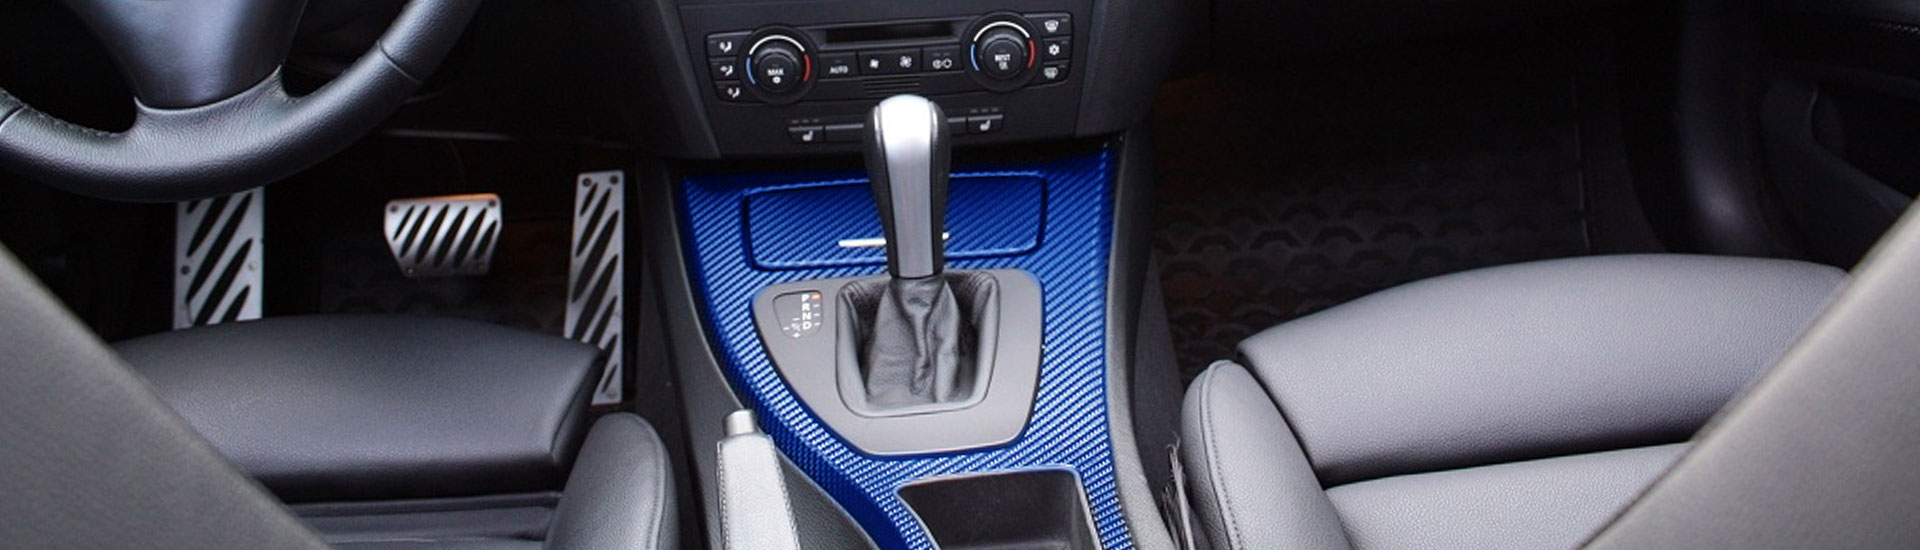 Blue Carbon Fiber Dash Kits